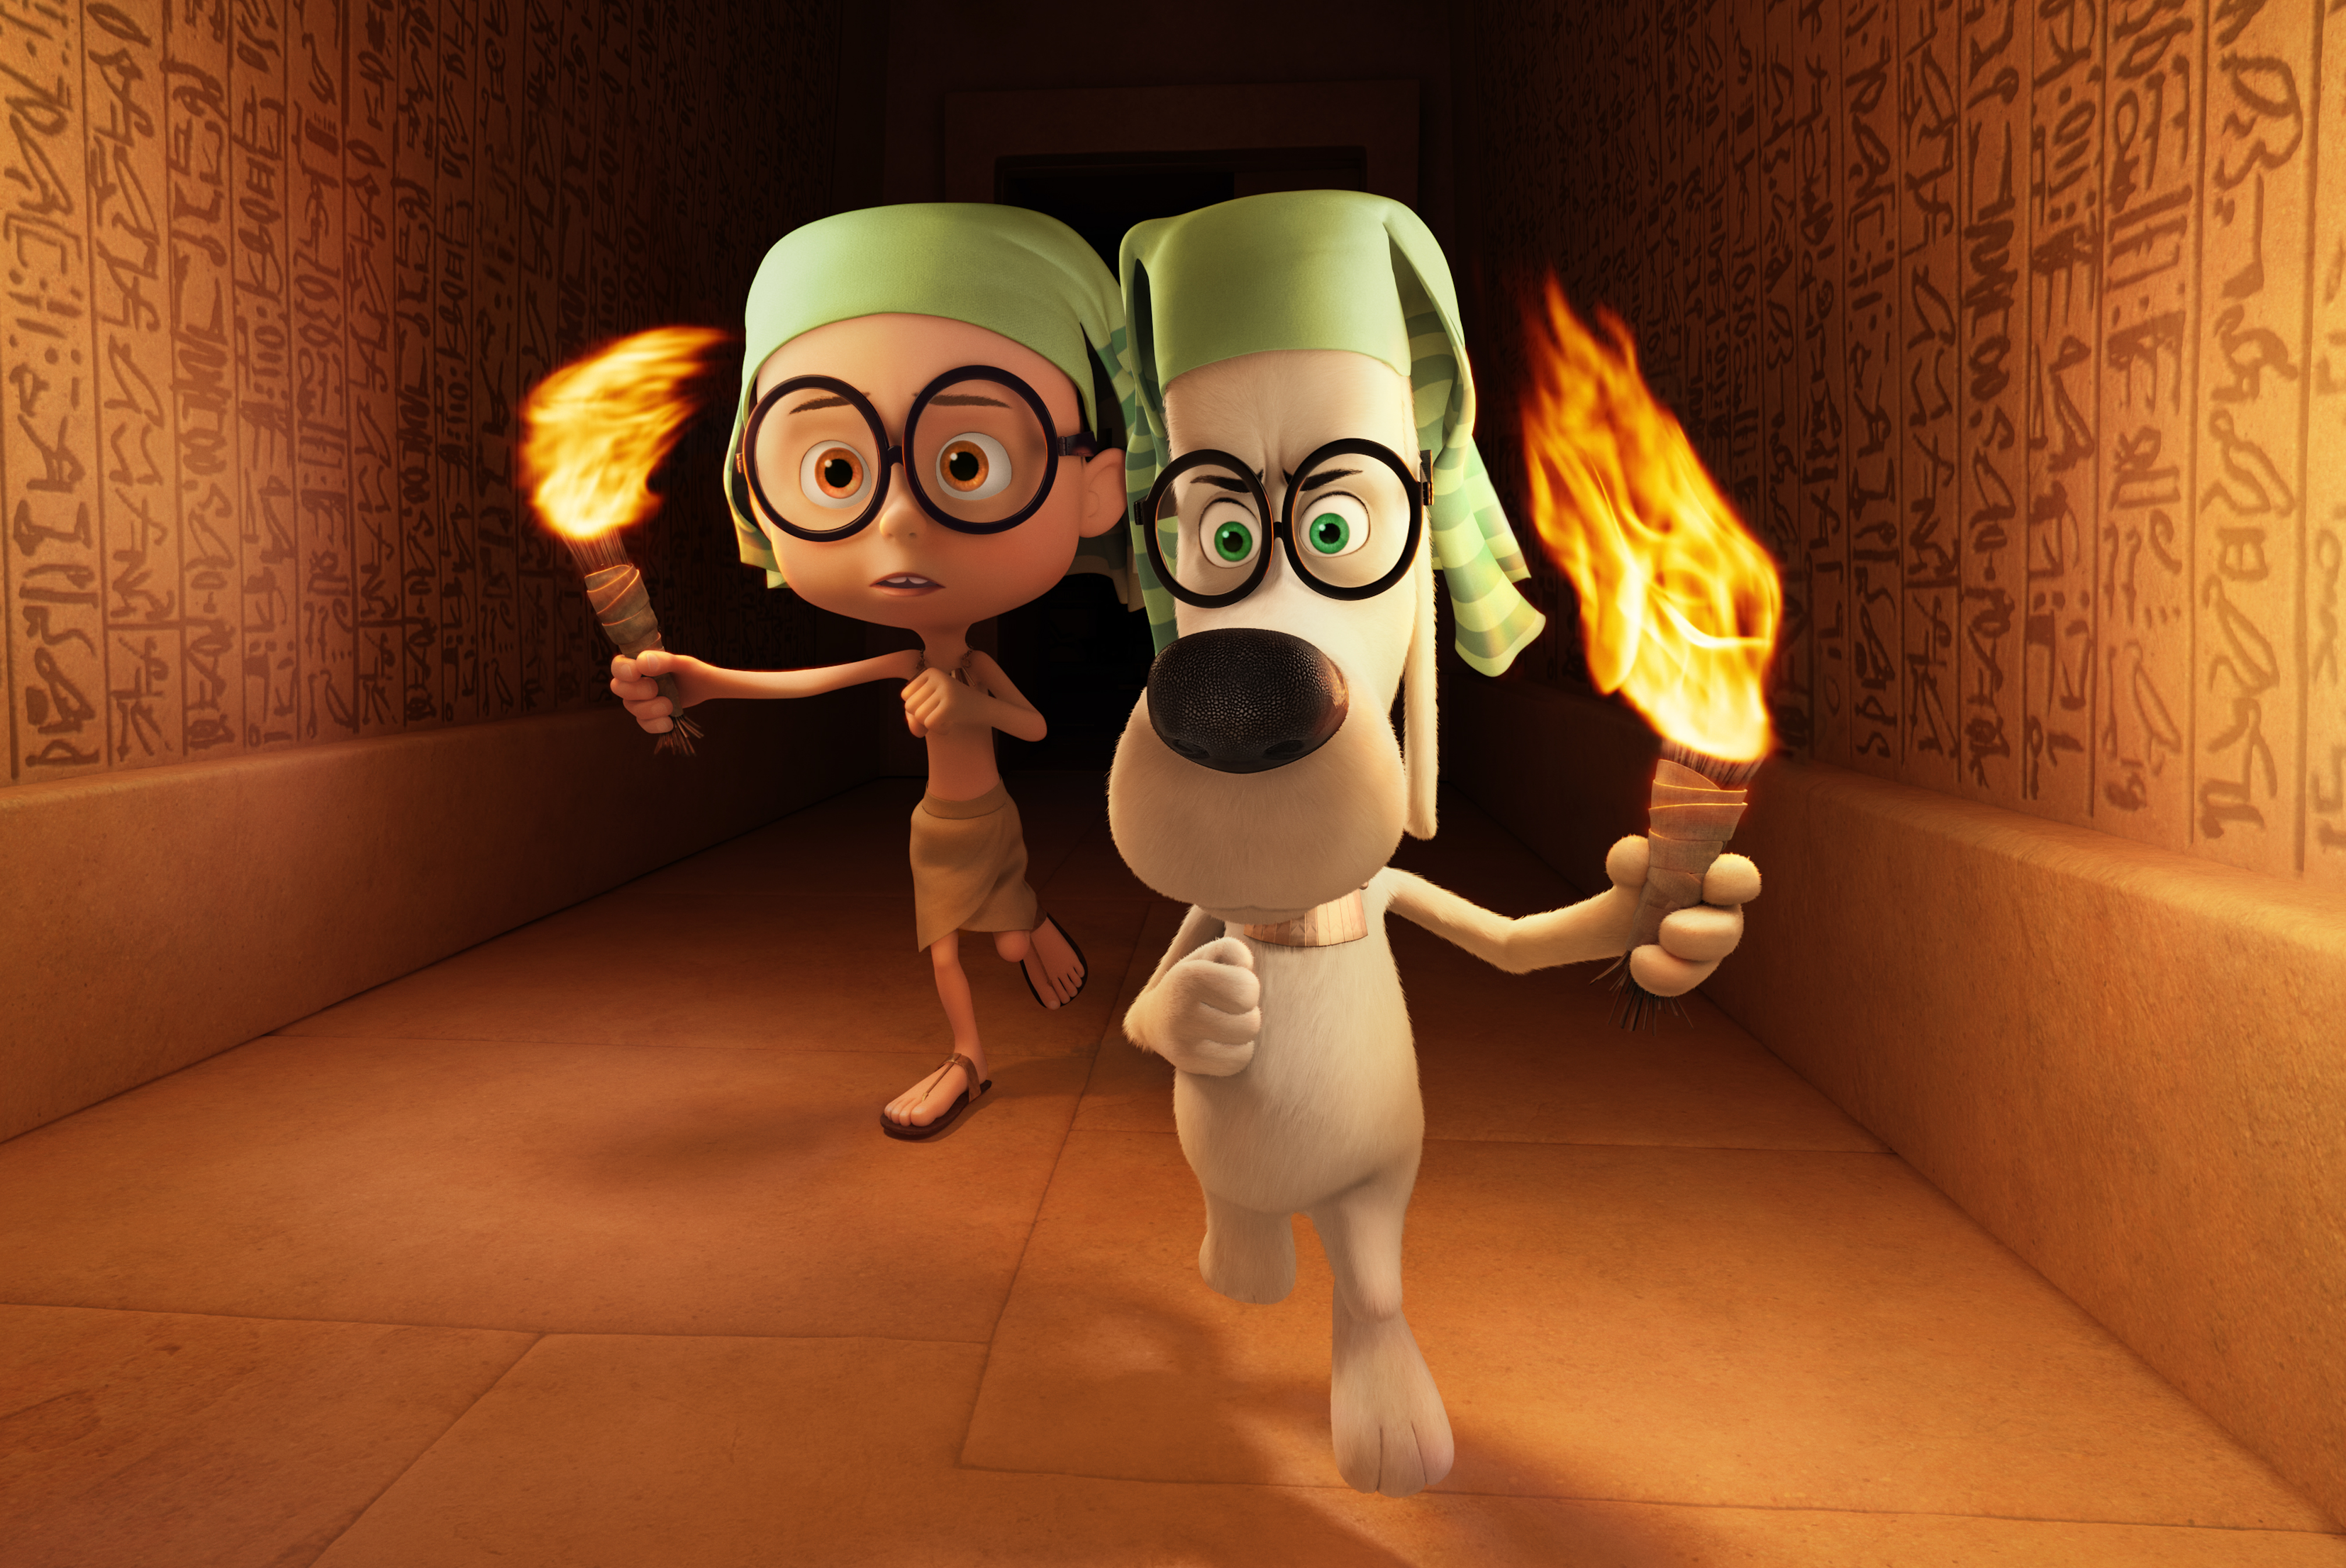 Hr. Peabody & Sherman